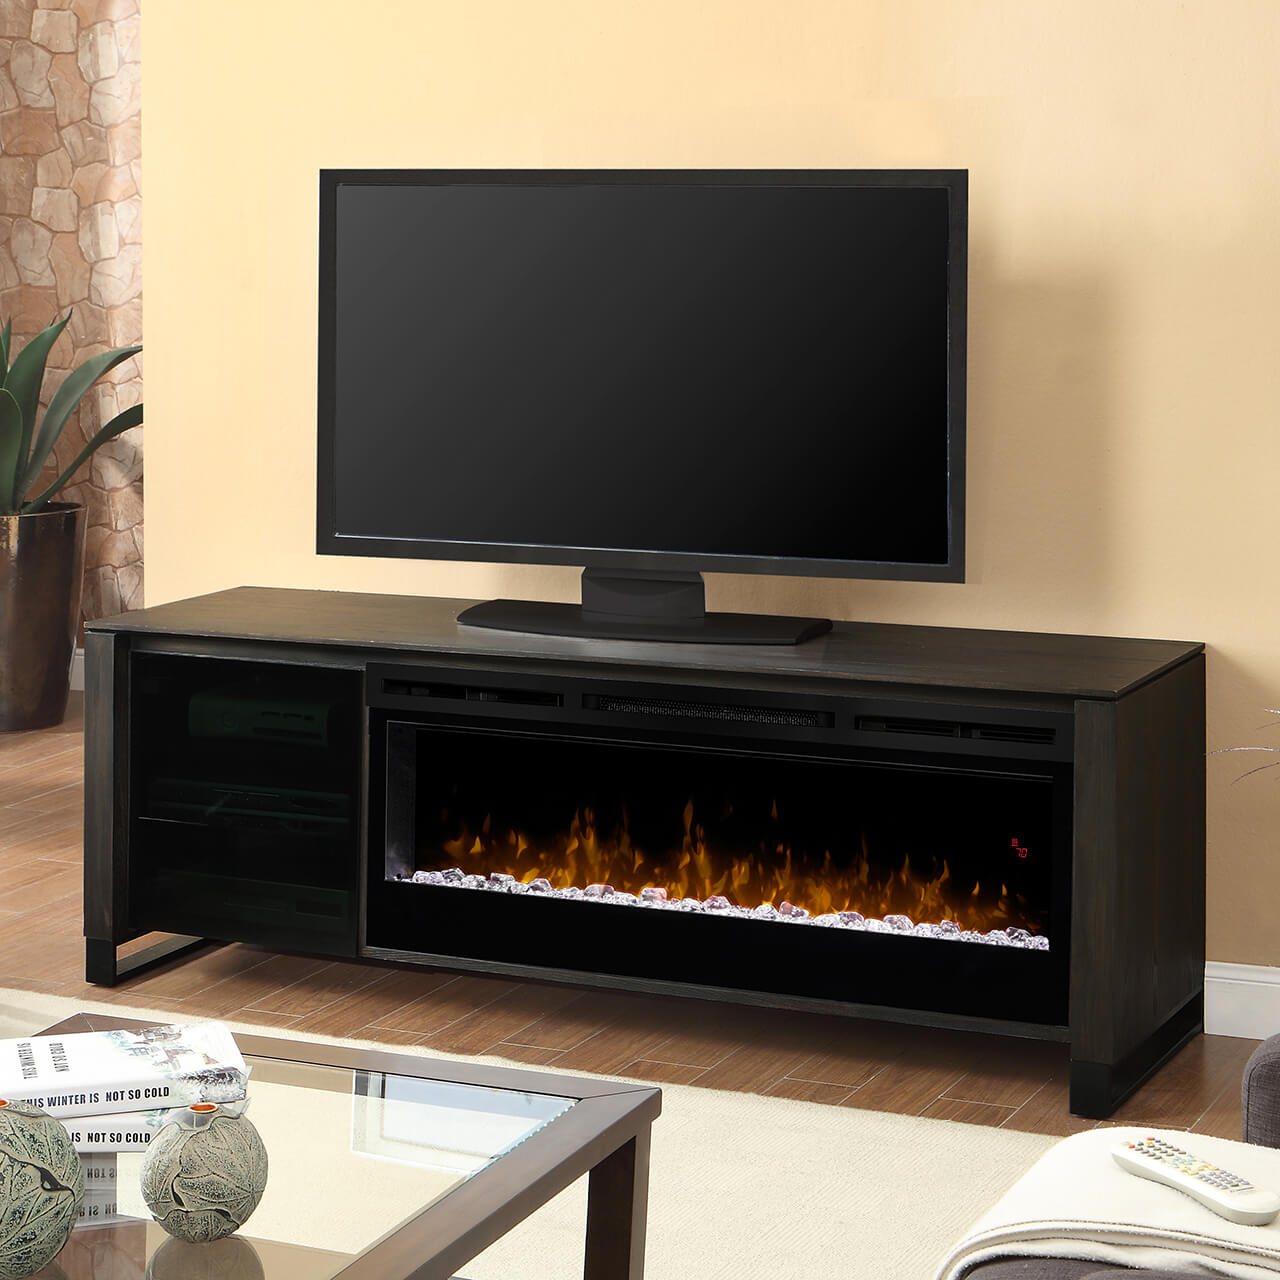 tvmedia media center dimplex walnut products deerhurst console electric efca fireplace accessories finishes burnished